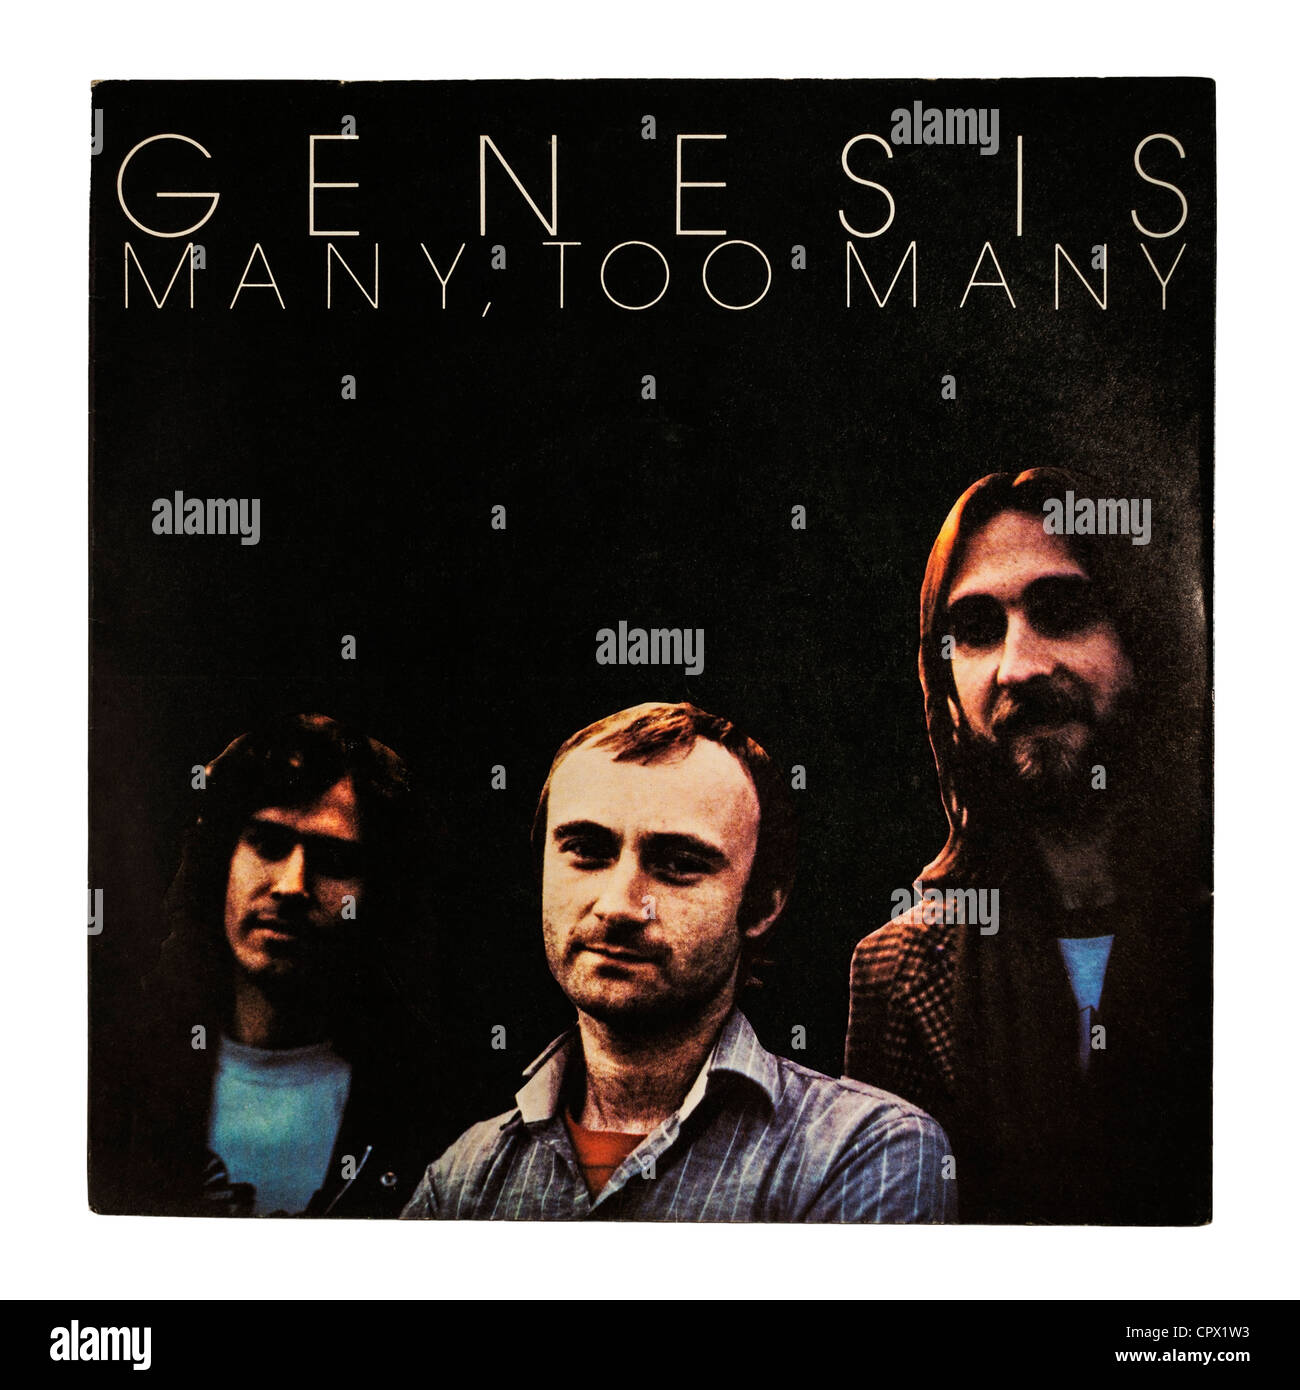 A vinyl single record by Genesis on a white background - Stock Image